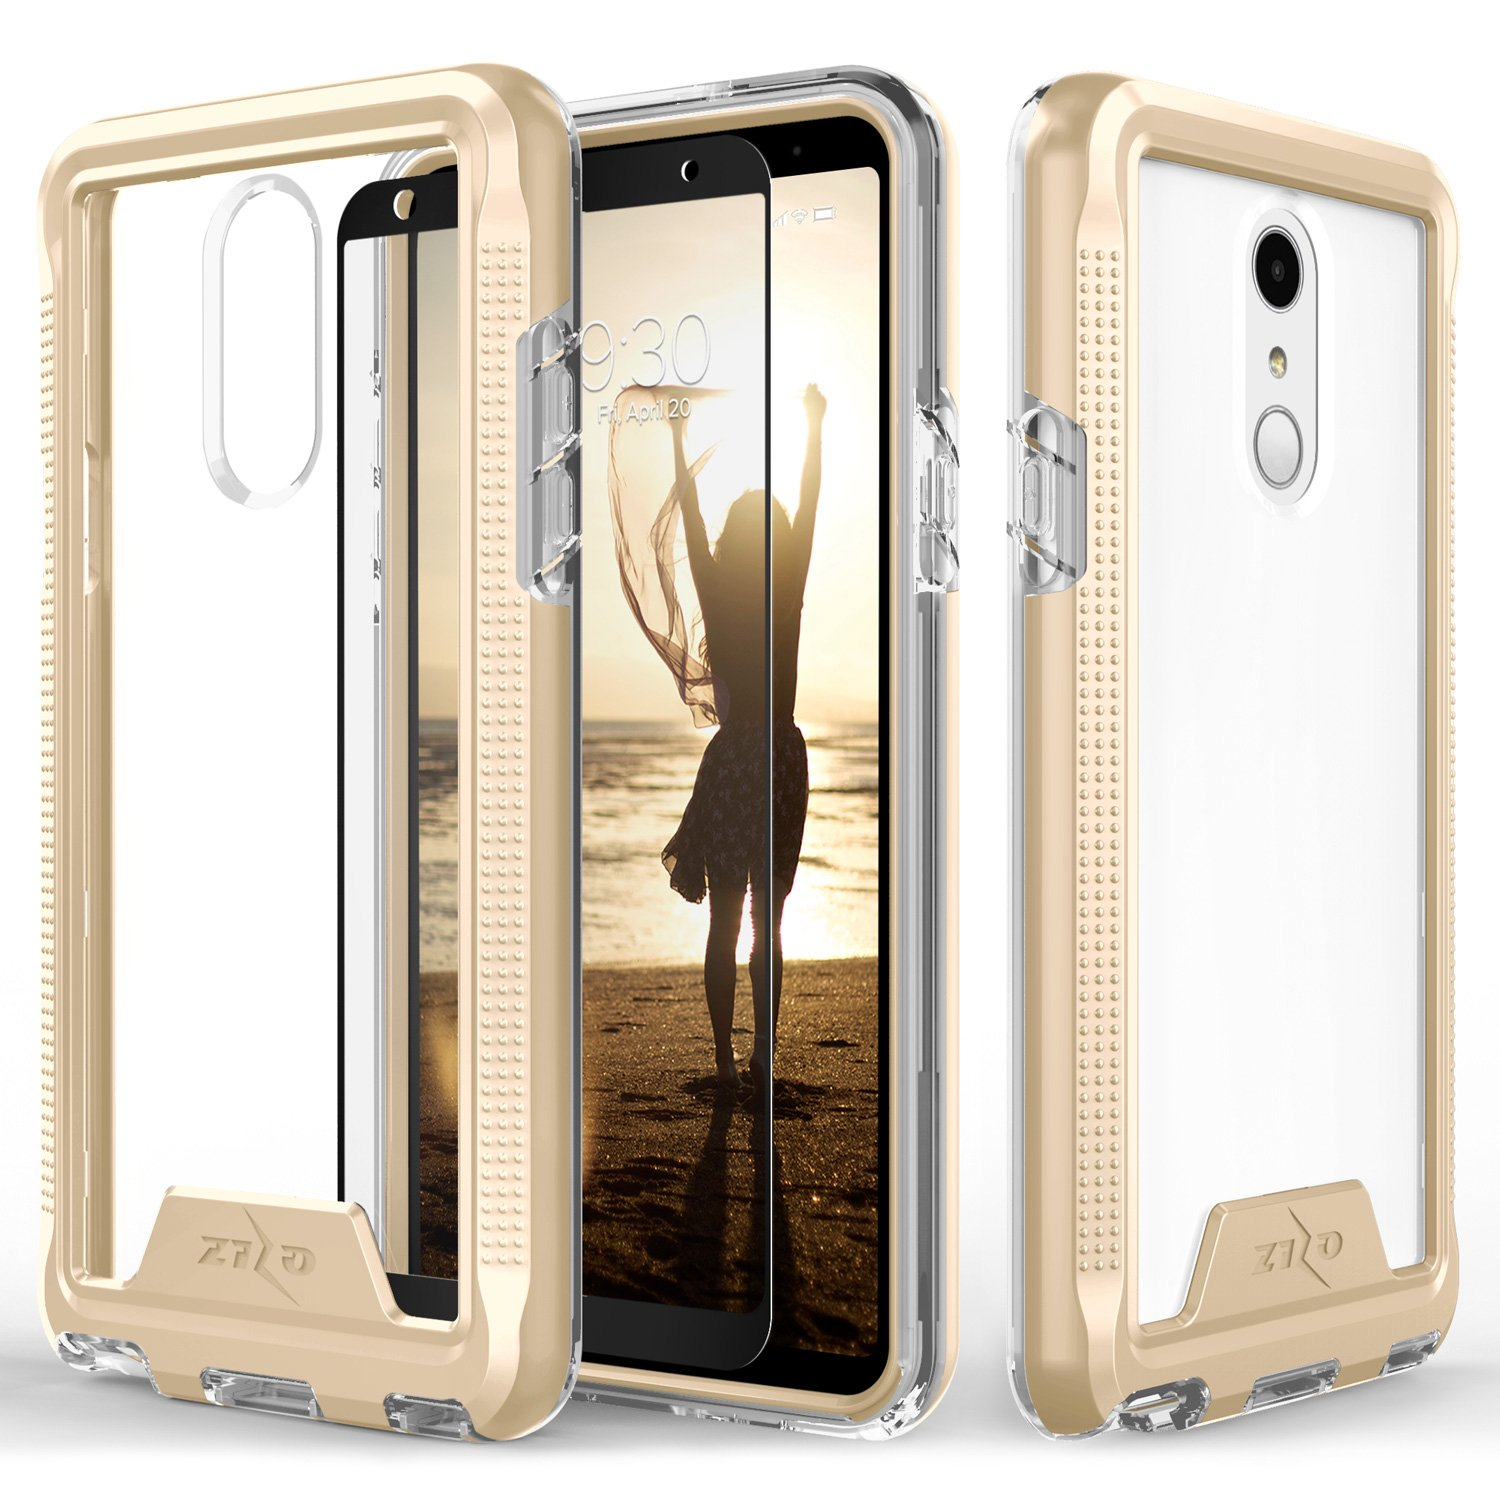 Zizo ION Series compatible with LG Stylo 4 Case Military Grade Drop Tested with Tempered Glass Screen Protector GOLD CLEAR